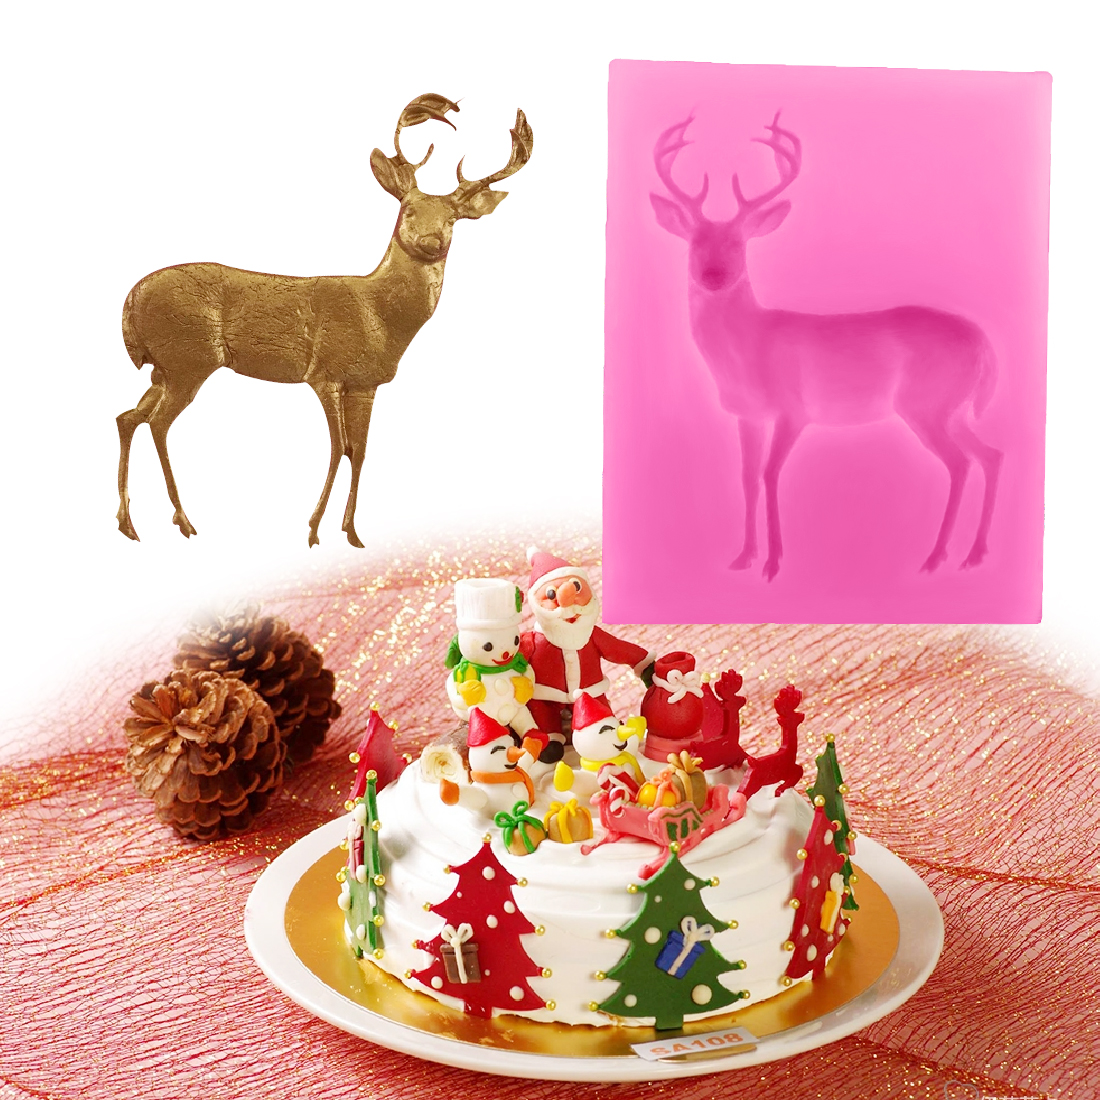 Pastry Tools 1PC Silicone Christmas Deer Shape Mold Soap Mould Fondant Cake Chocolate Stencils Cake Decorating Bakeware Cooking